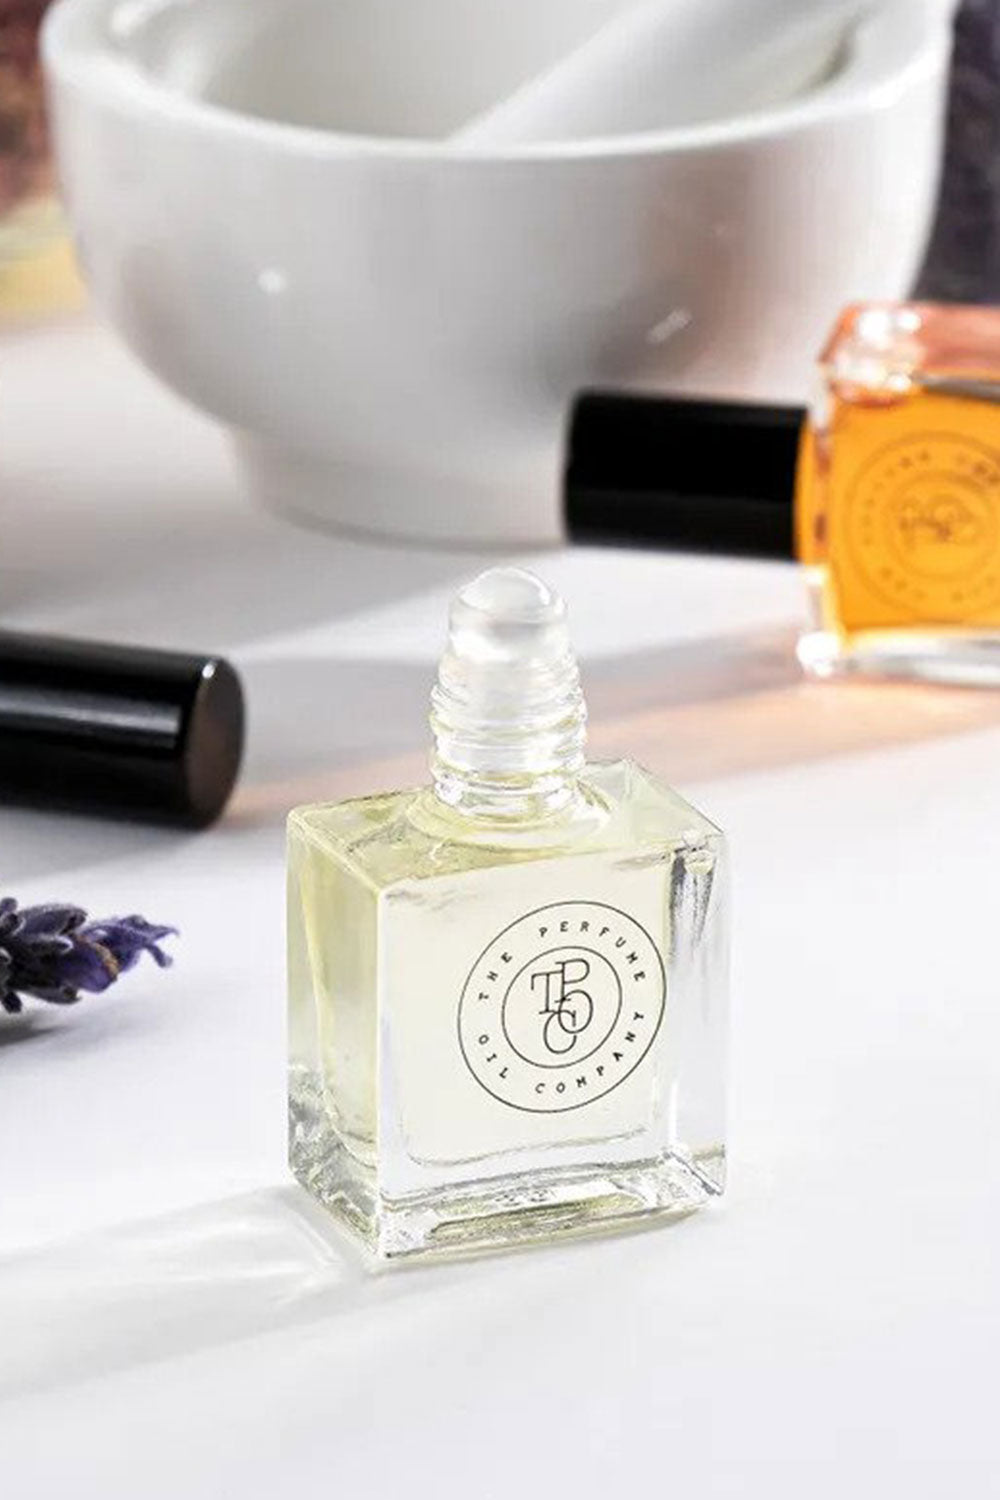 Five Perfume - Inspired By Chanel No 5 - Cc - Kabana Shop